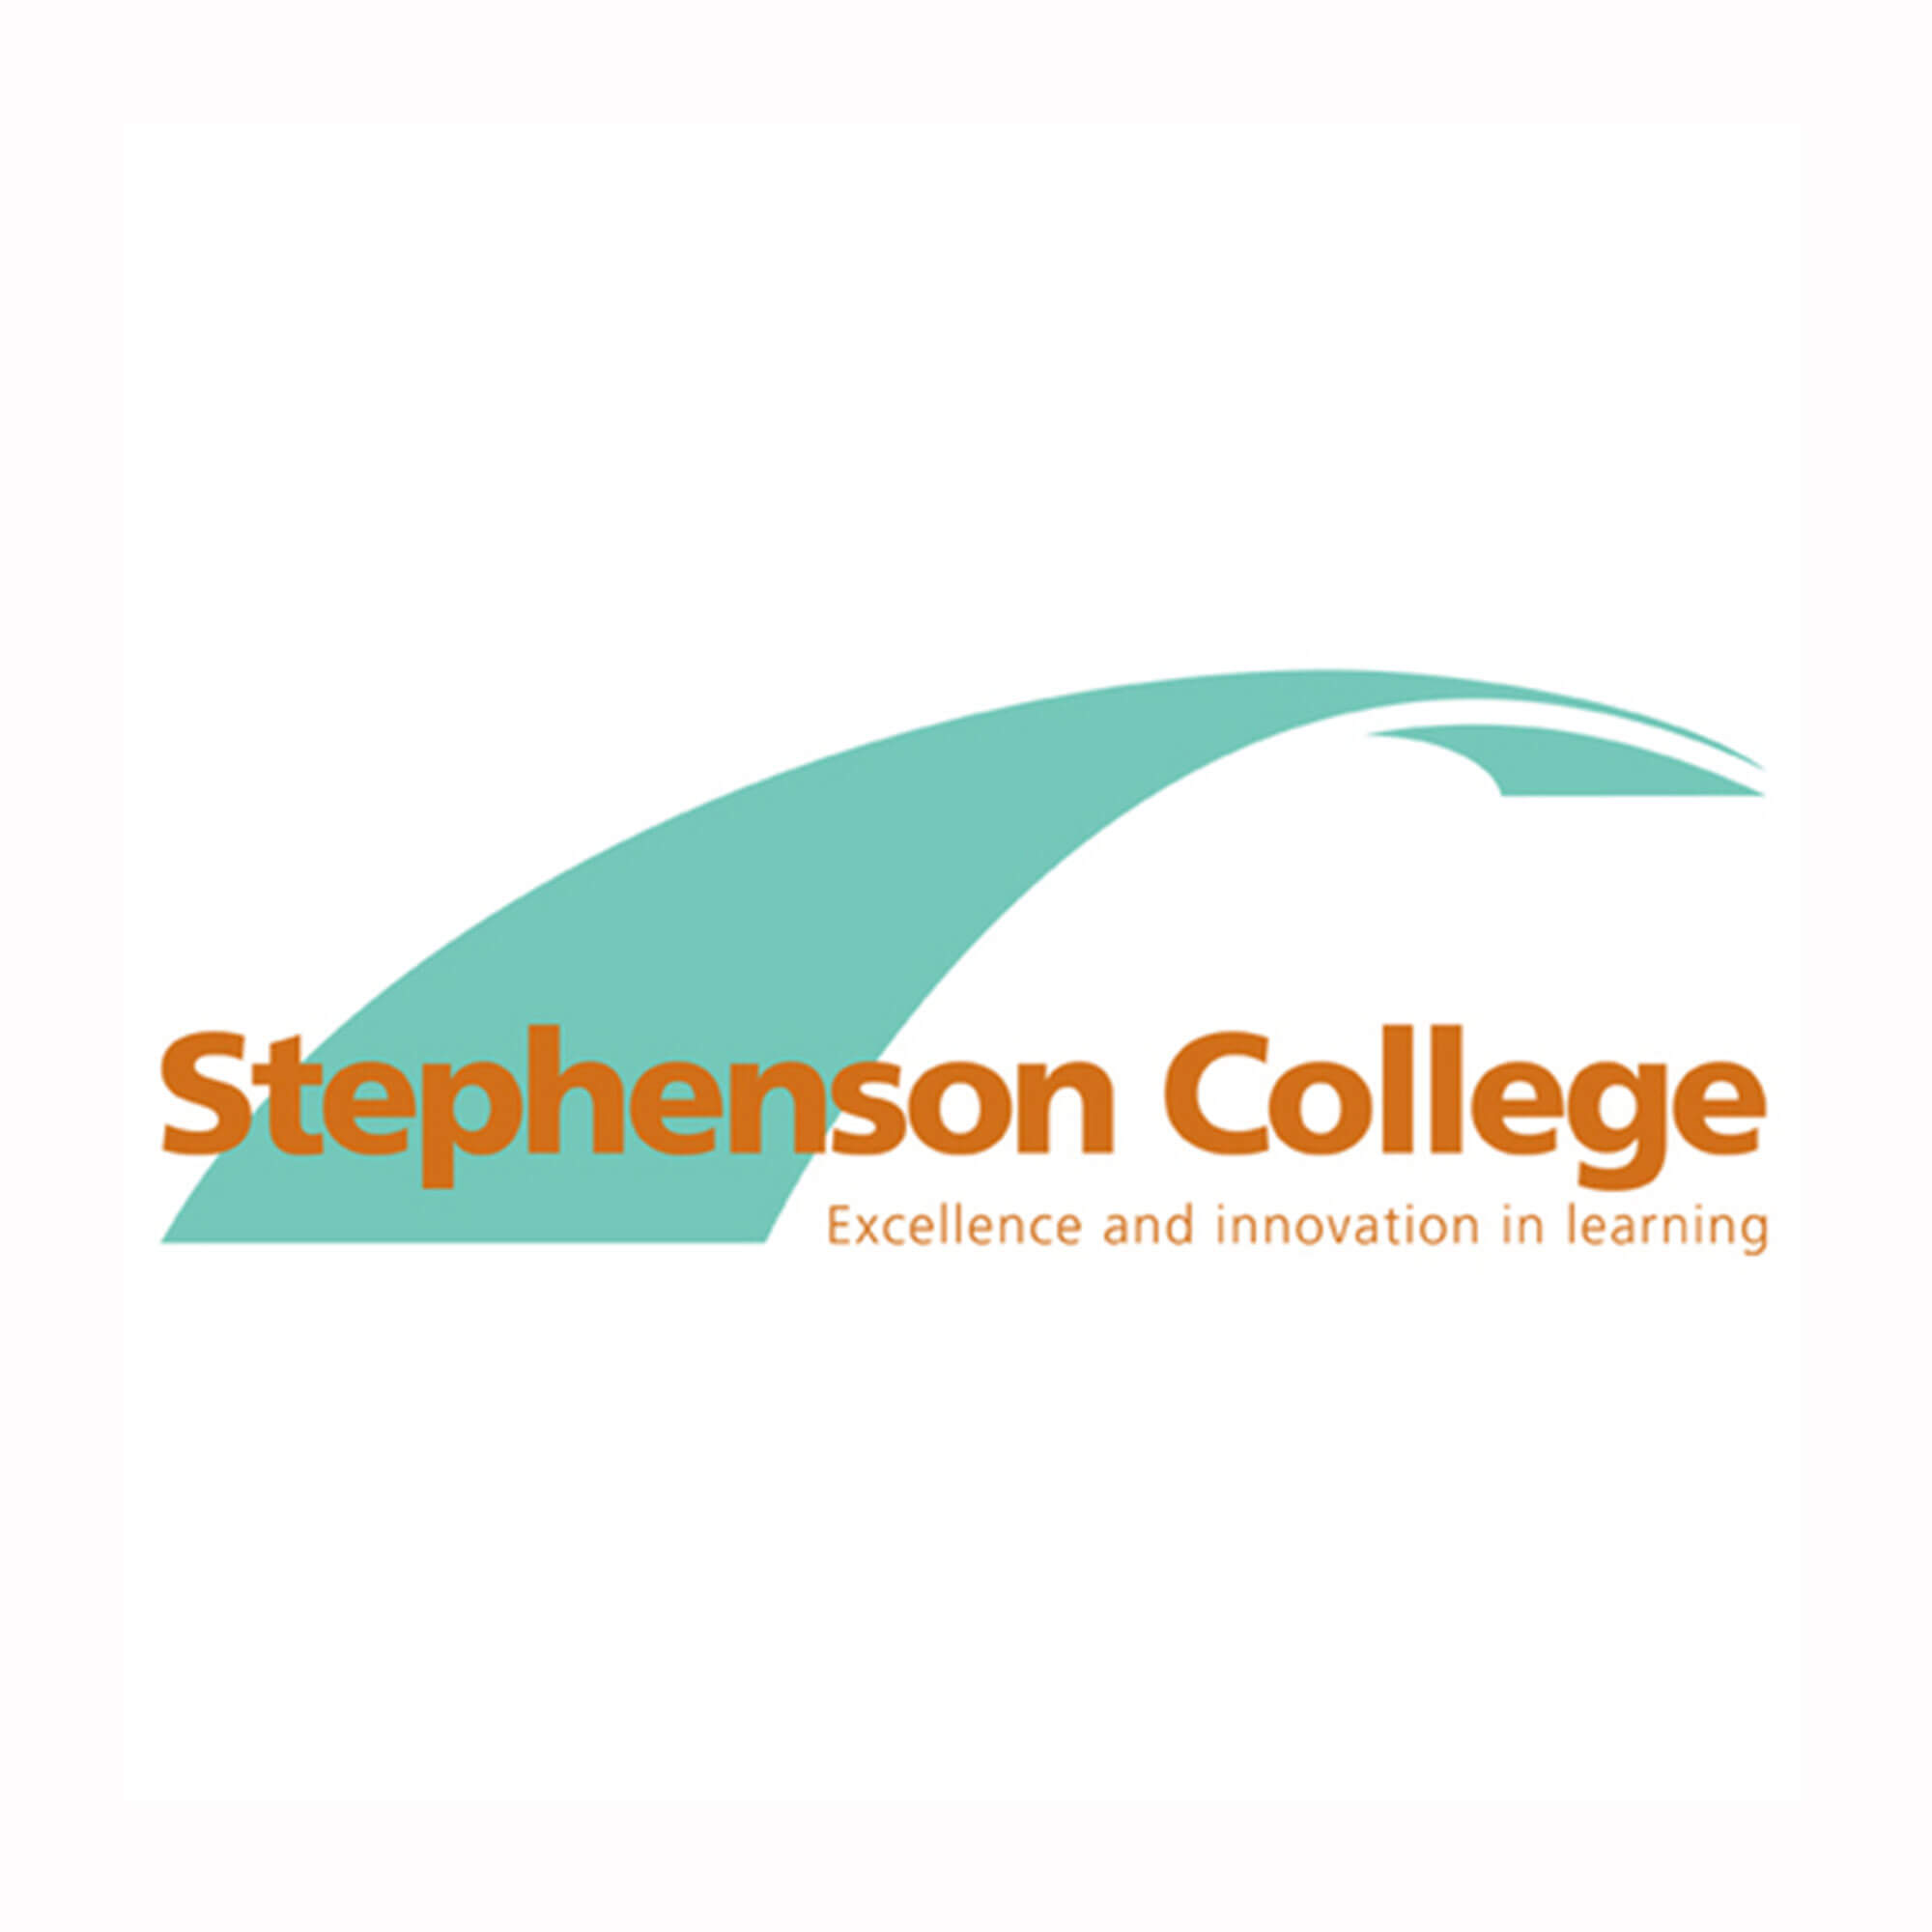 Stepehens college - orange font, green line